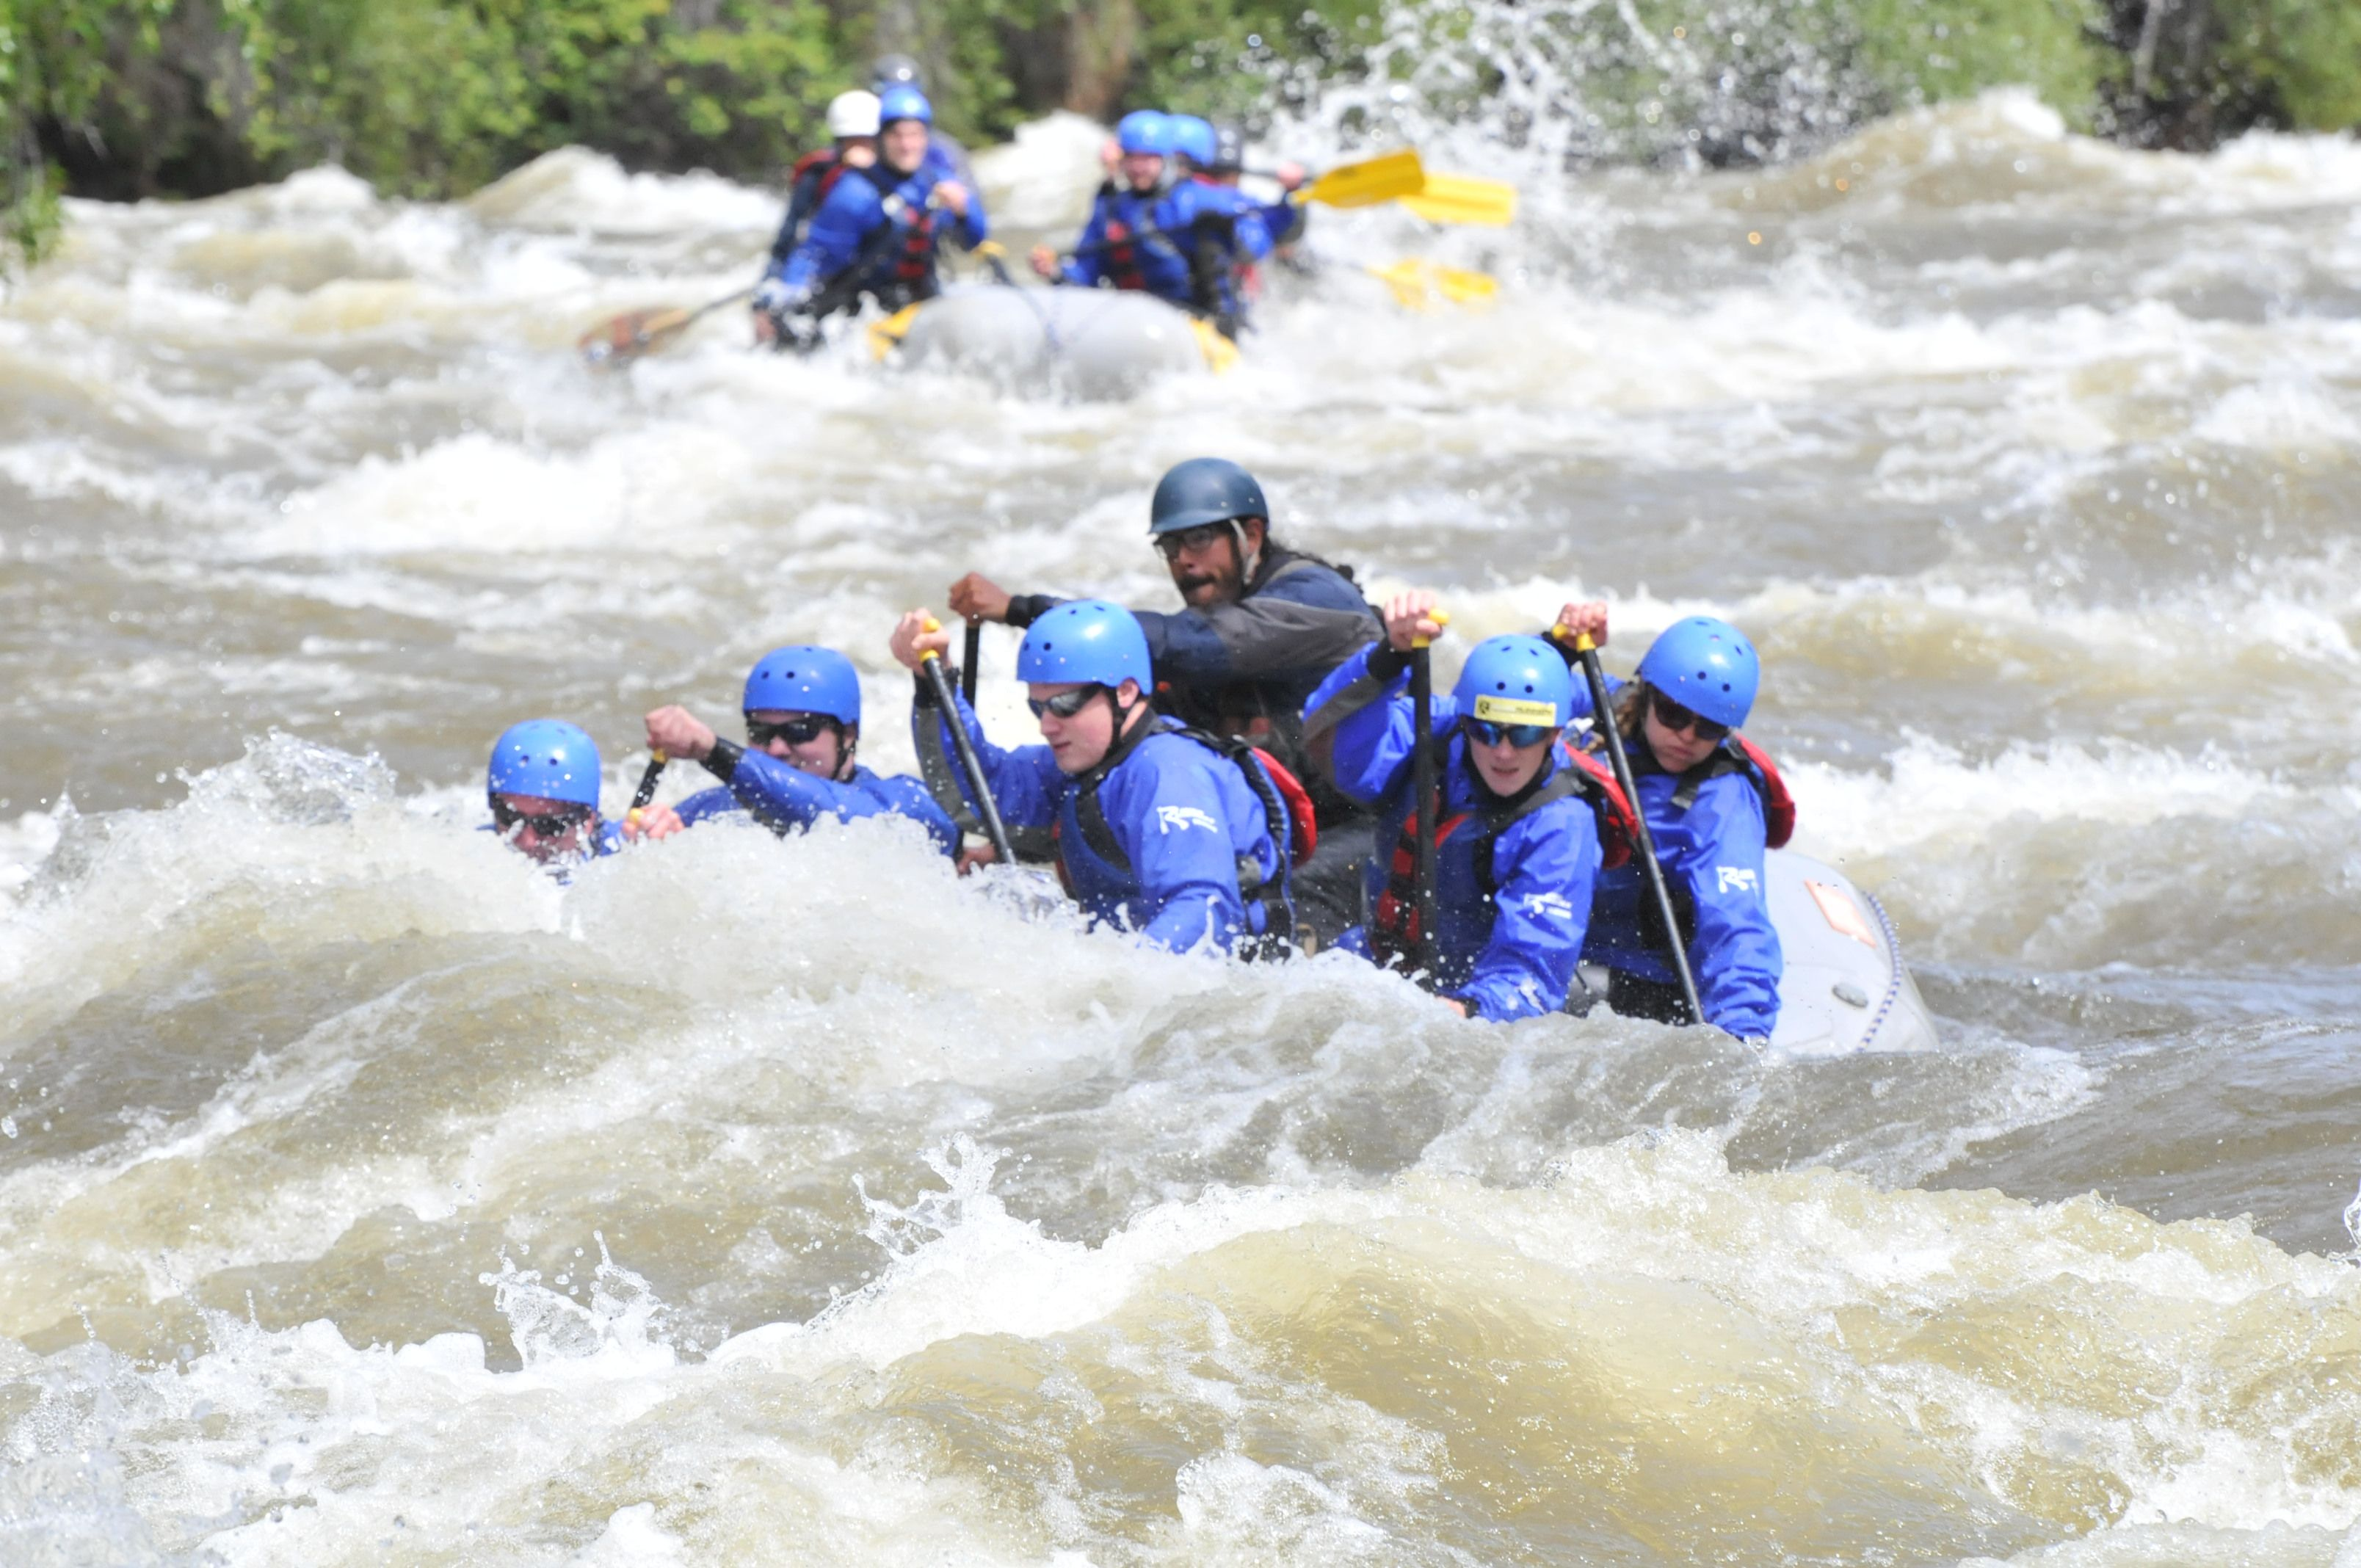 Find Epic Whitewater Rafting Conditions